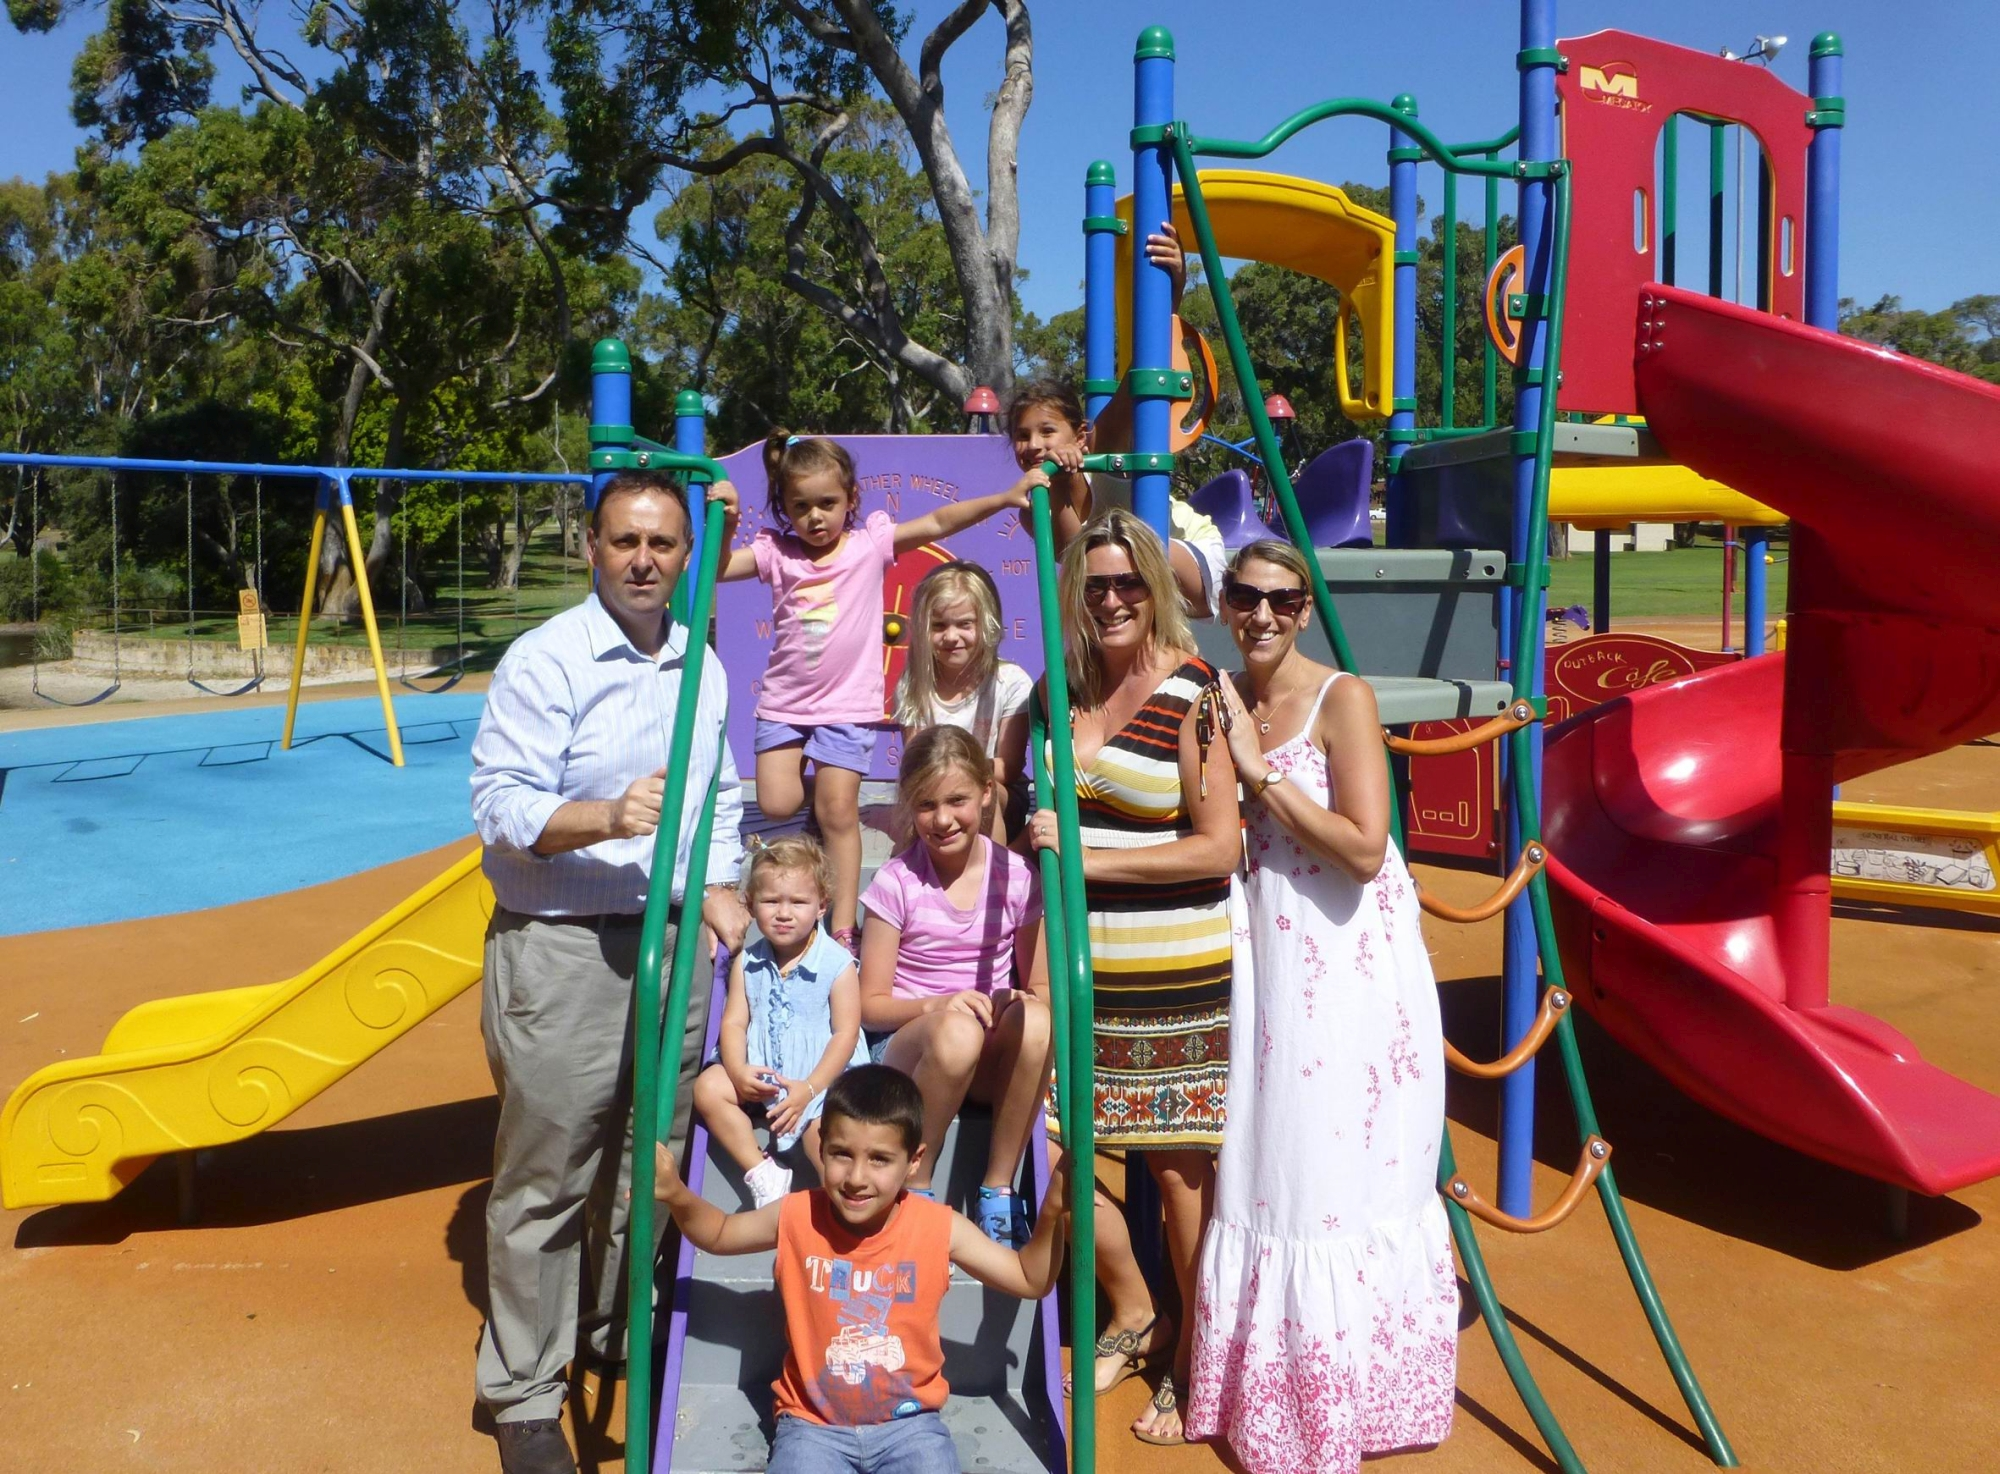 MLC Peter Katsambanis with Marnie Brown, Lee Madigan and children at Mawson Park in Hillarys.